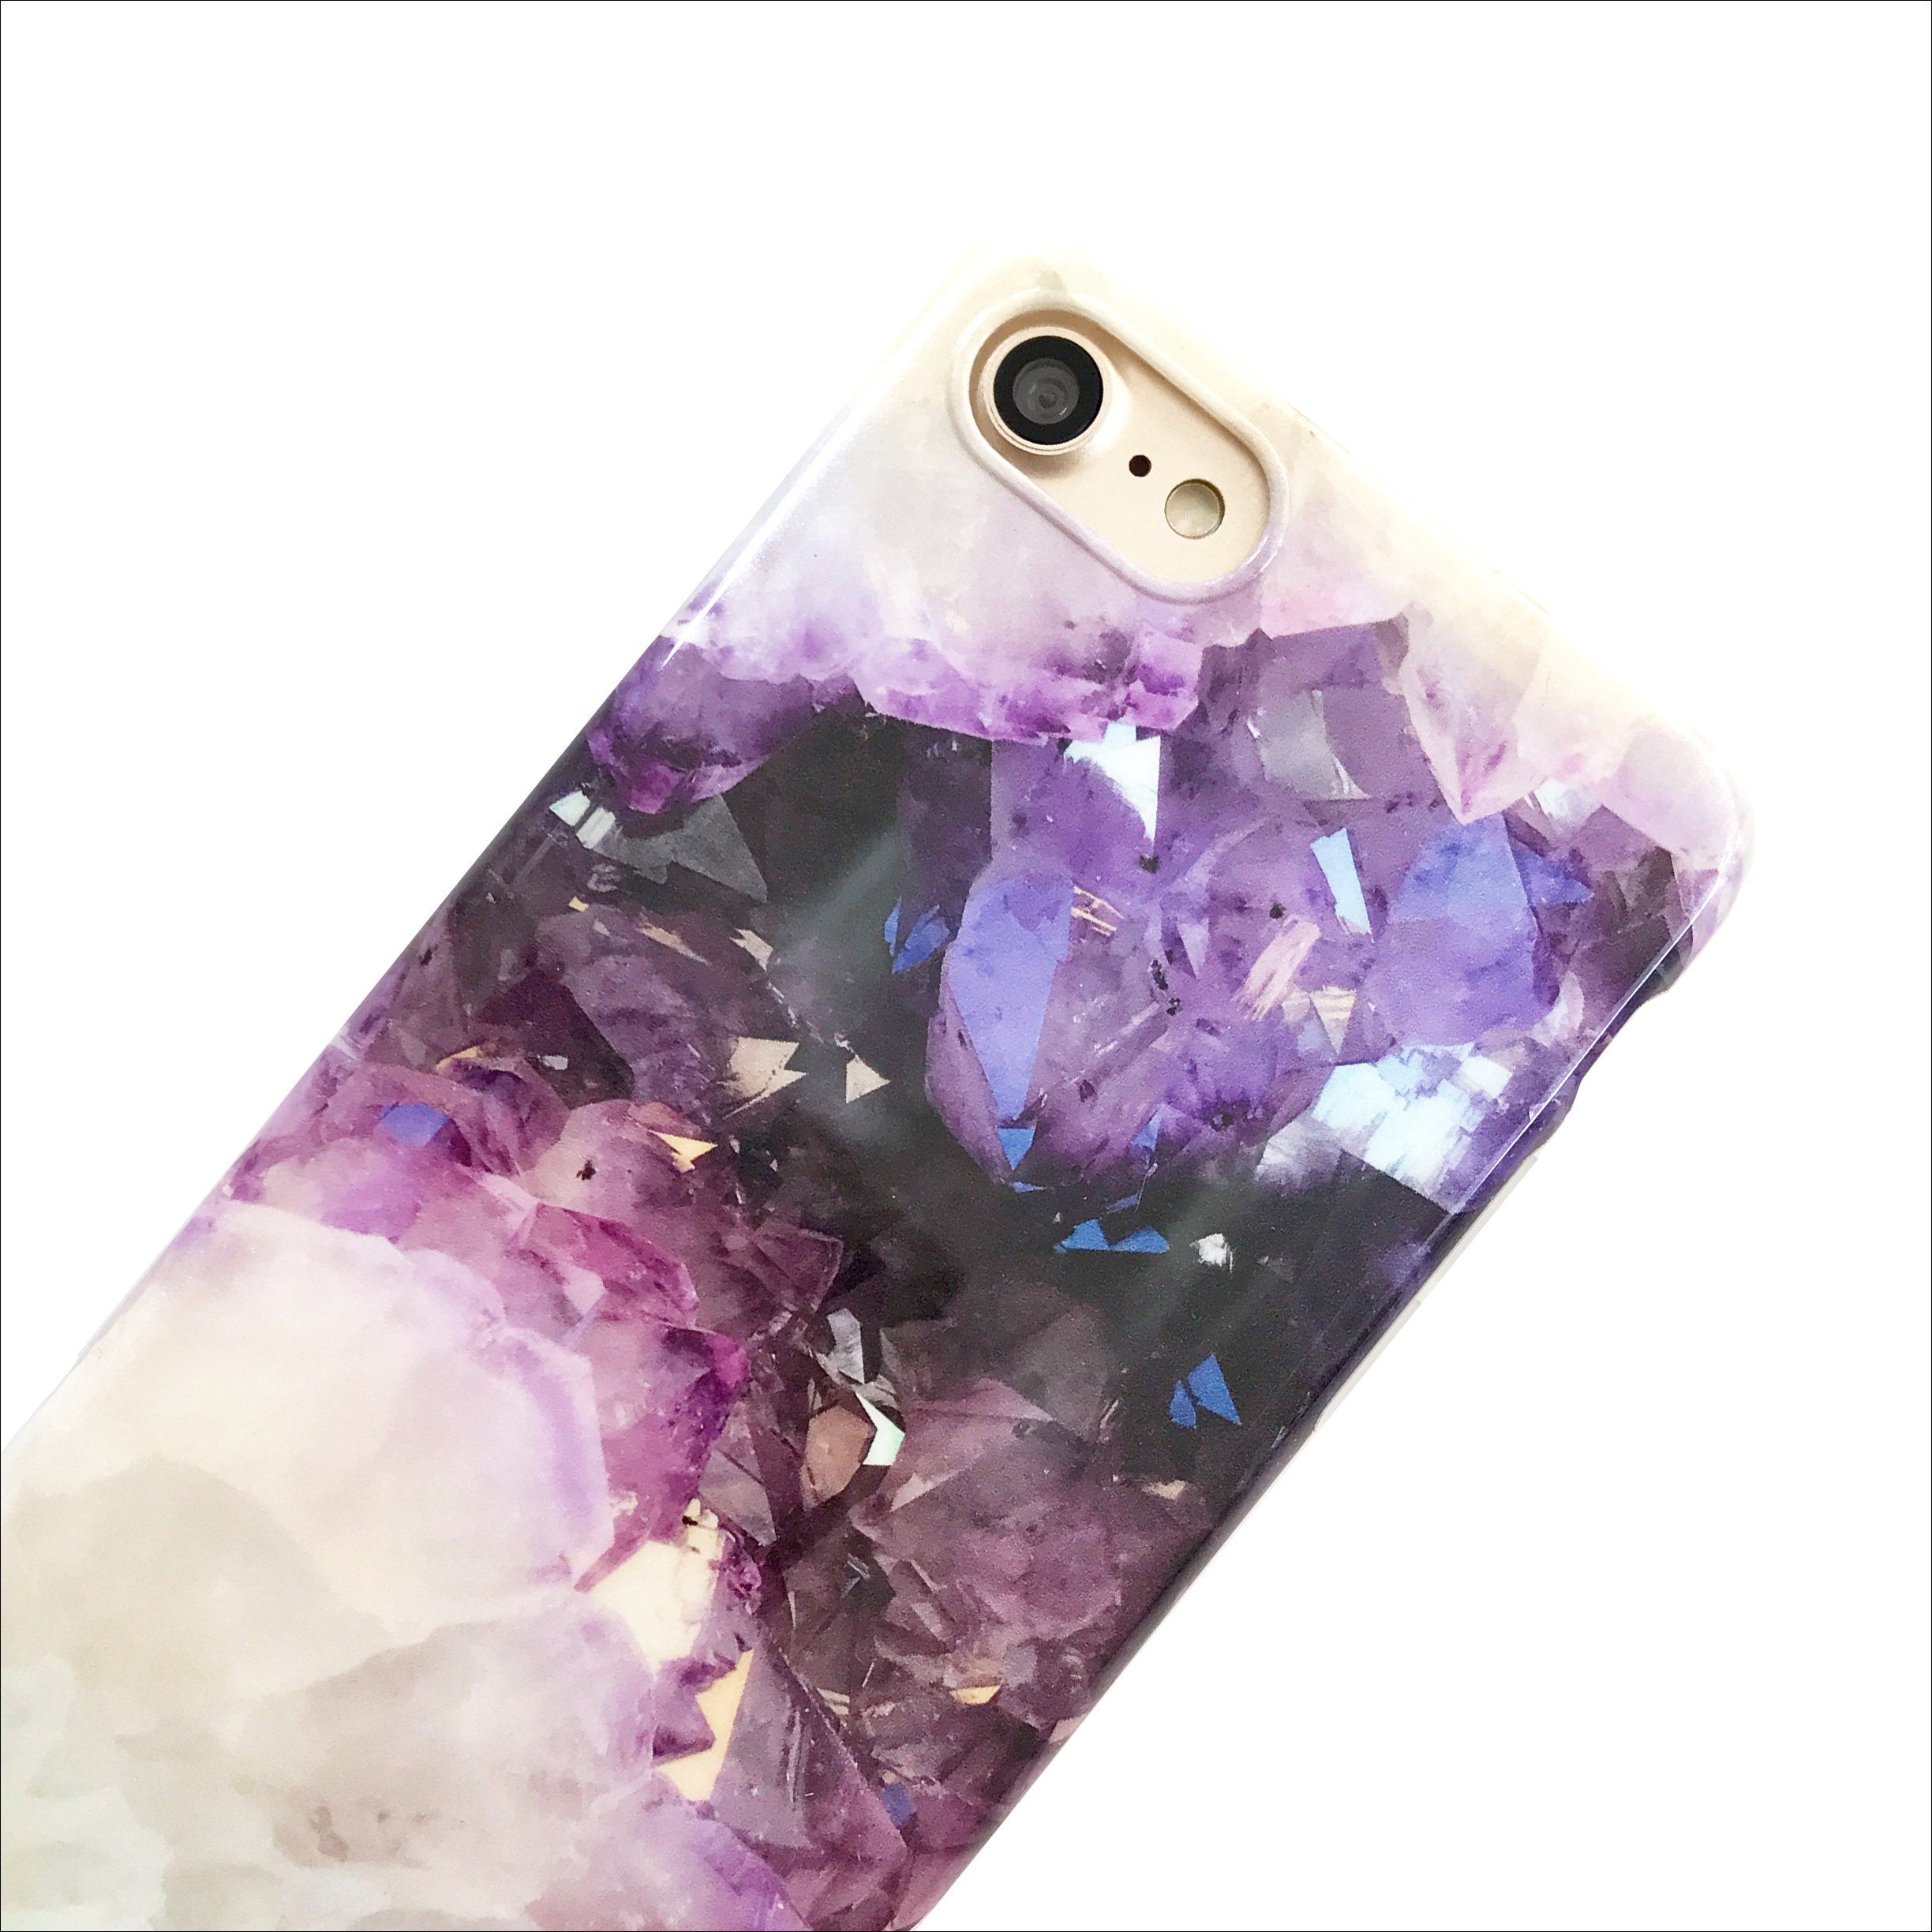 the latest 38cc3 81e1a Amethyst Crystal Phone Case in 2019 | Products | Diy phone case ...